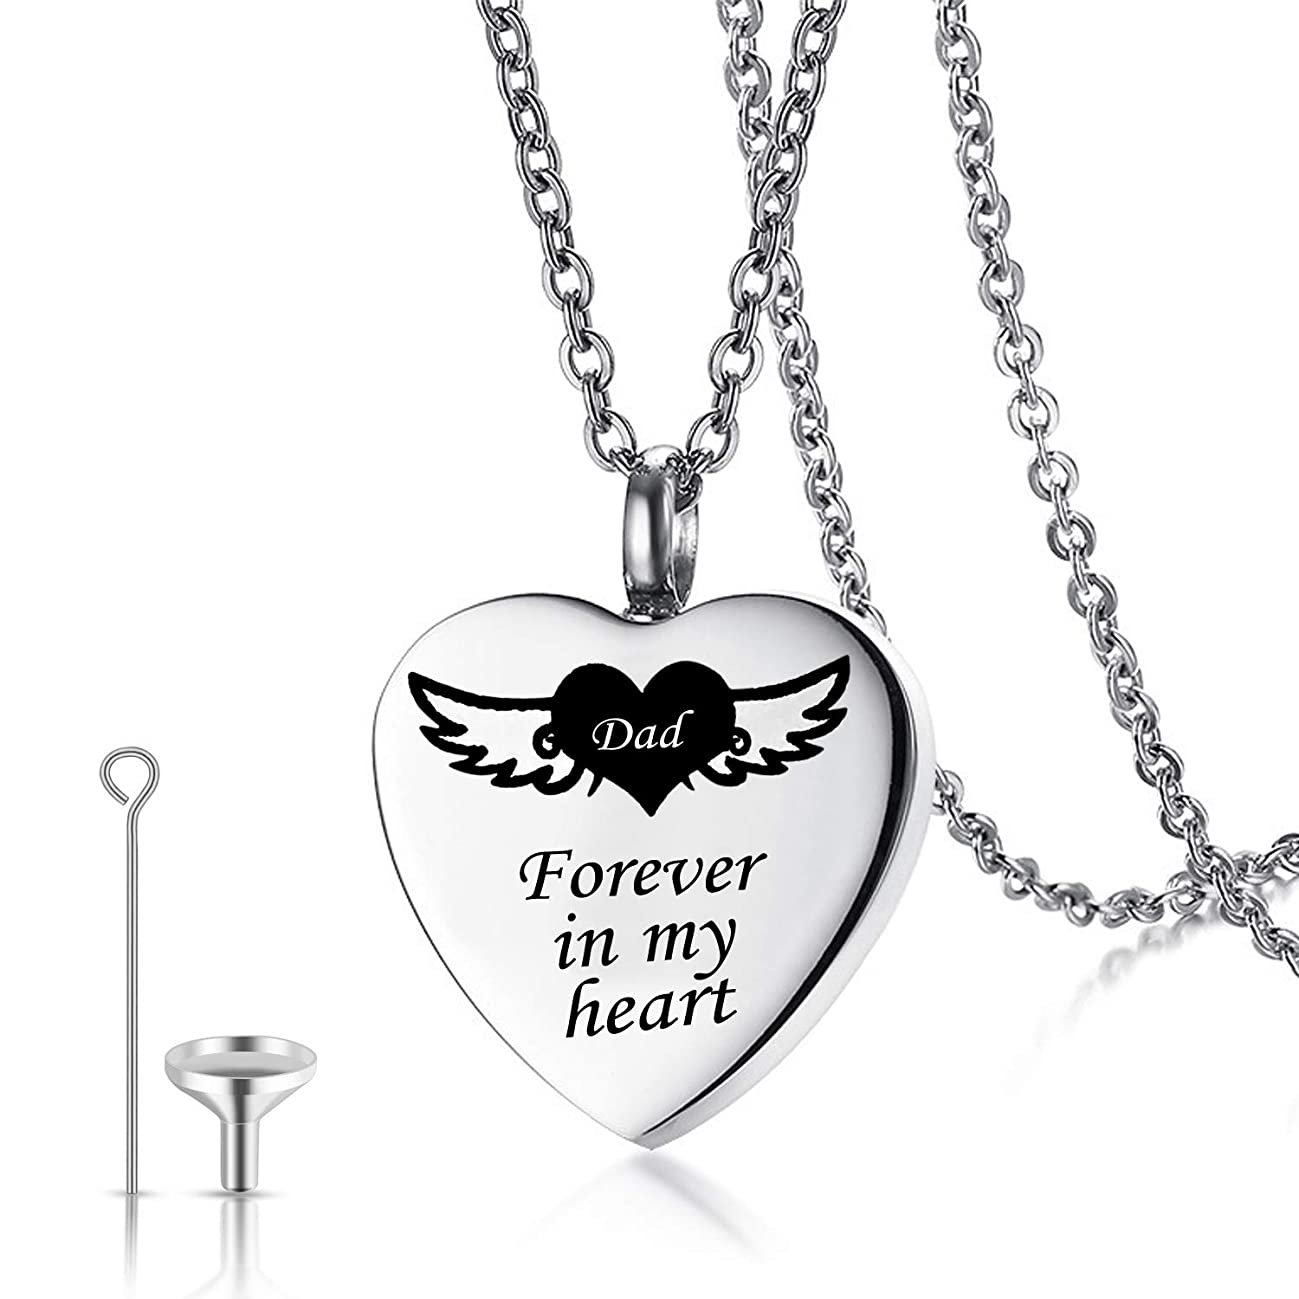 Urn Necklaces for Human Ashes Forever in My Heart Cremation Jewelry Necklace Pendant Funnel Filler Kit